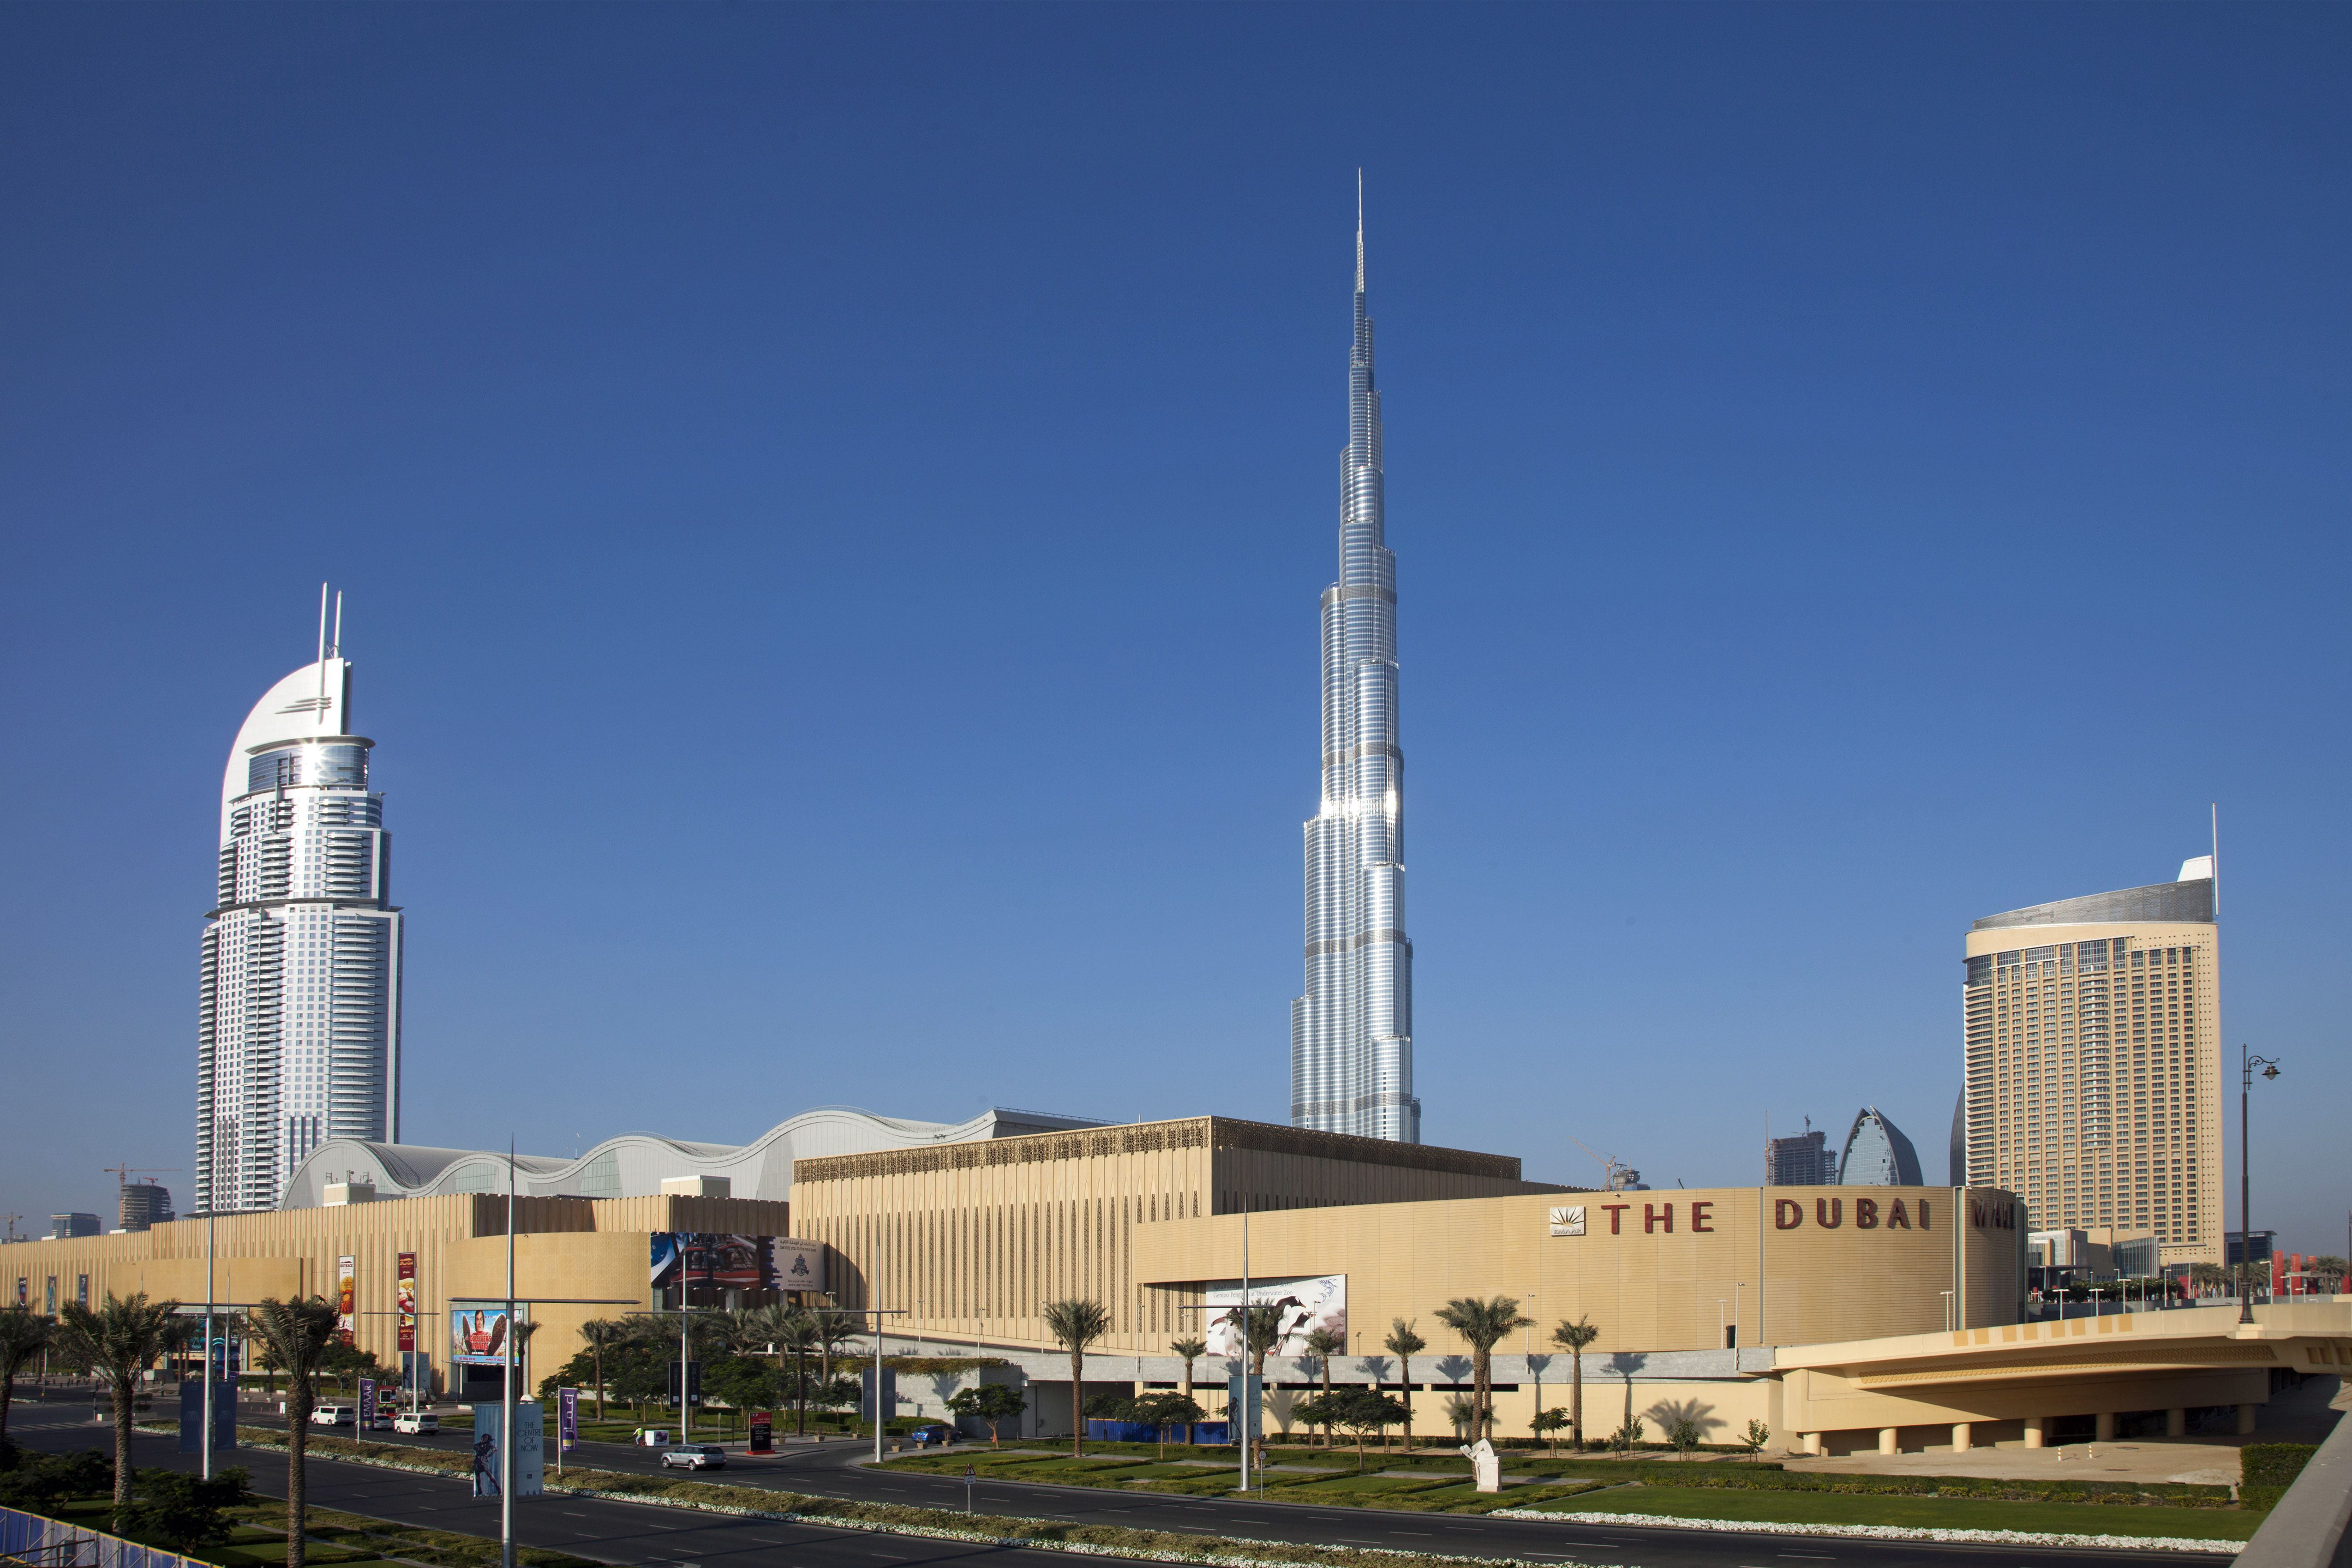 Dubai Mall is the largest facility of its kind in the world.